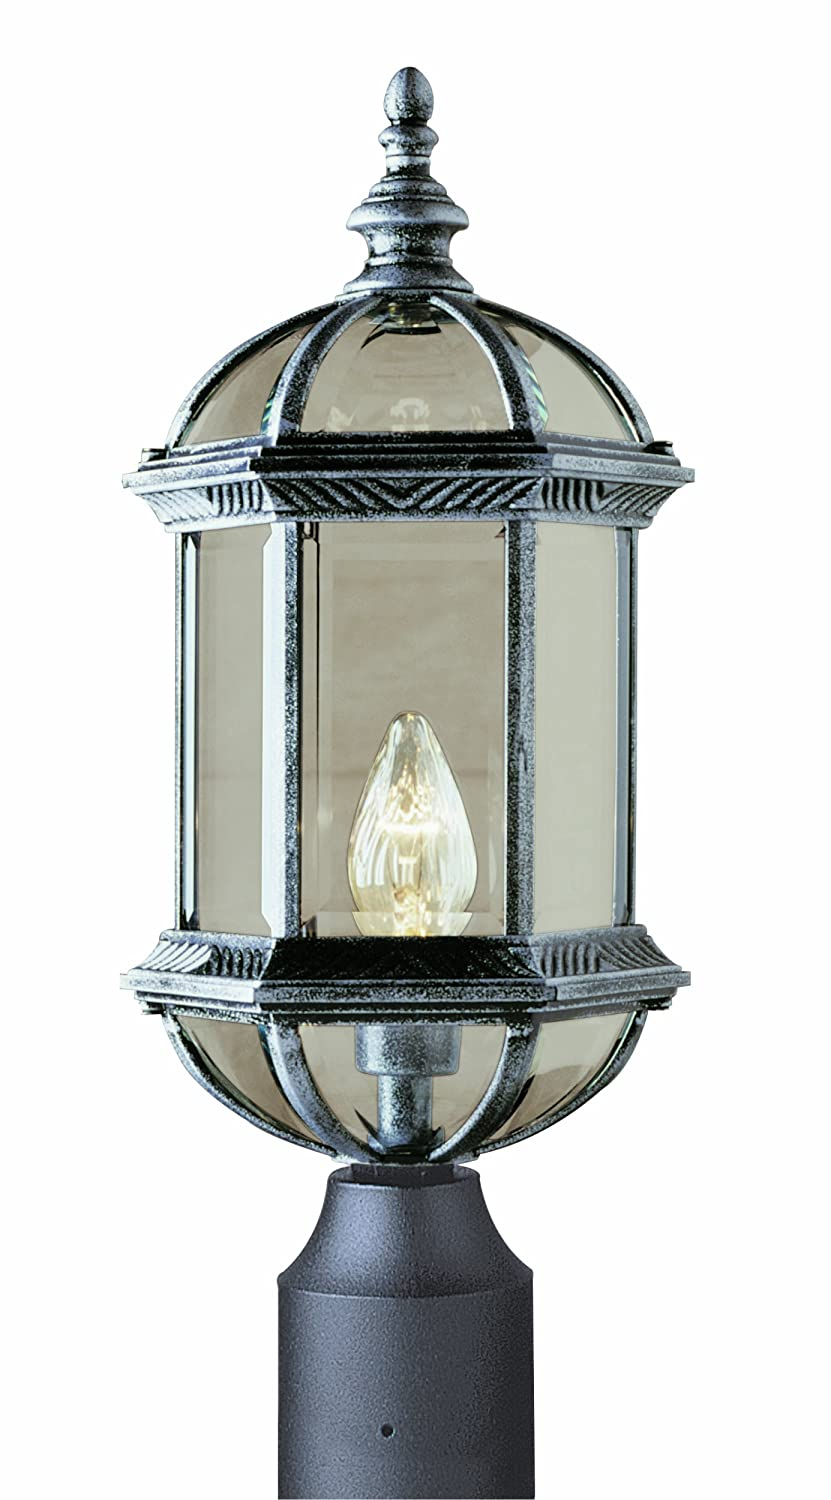 Trans Globe Lighting 4186 BK 19-3/4-Inch 1-Light Outdoor Post Top Lantern, Black